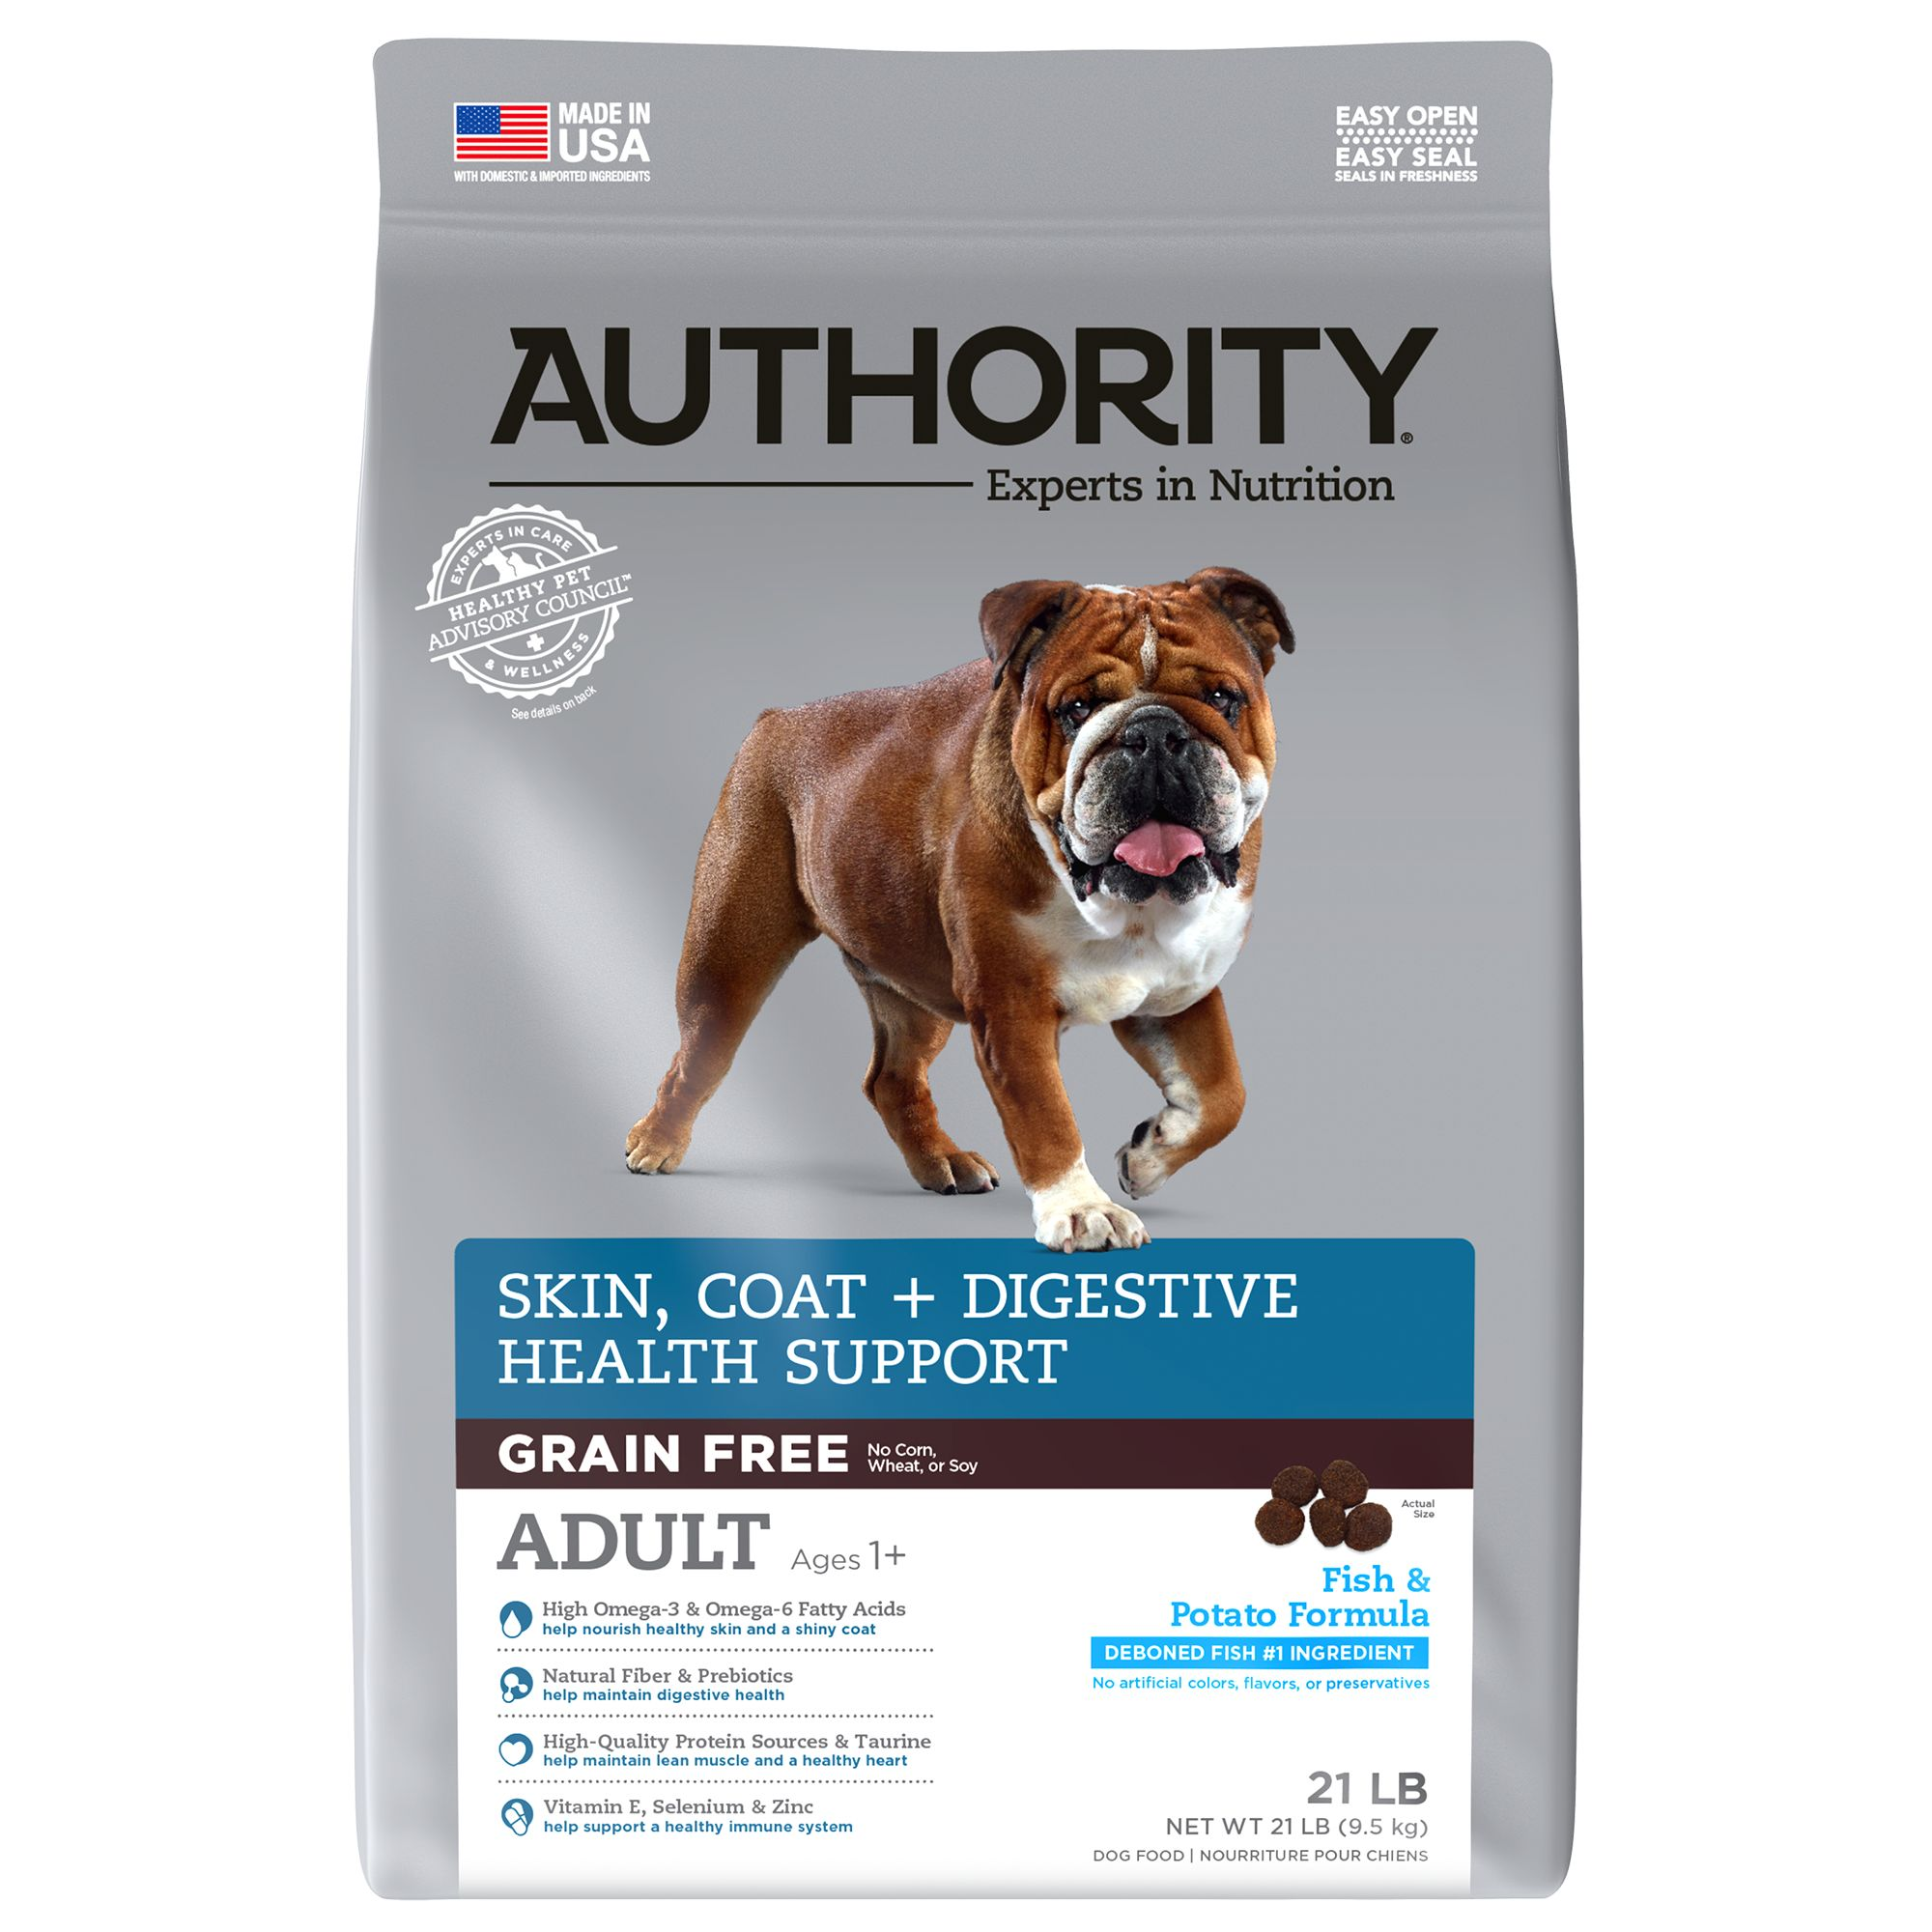 Authority Skin, Coat + Digestive Health Support Adult Dog Food